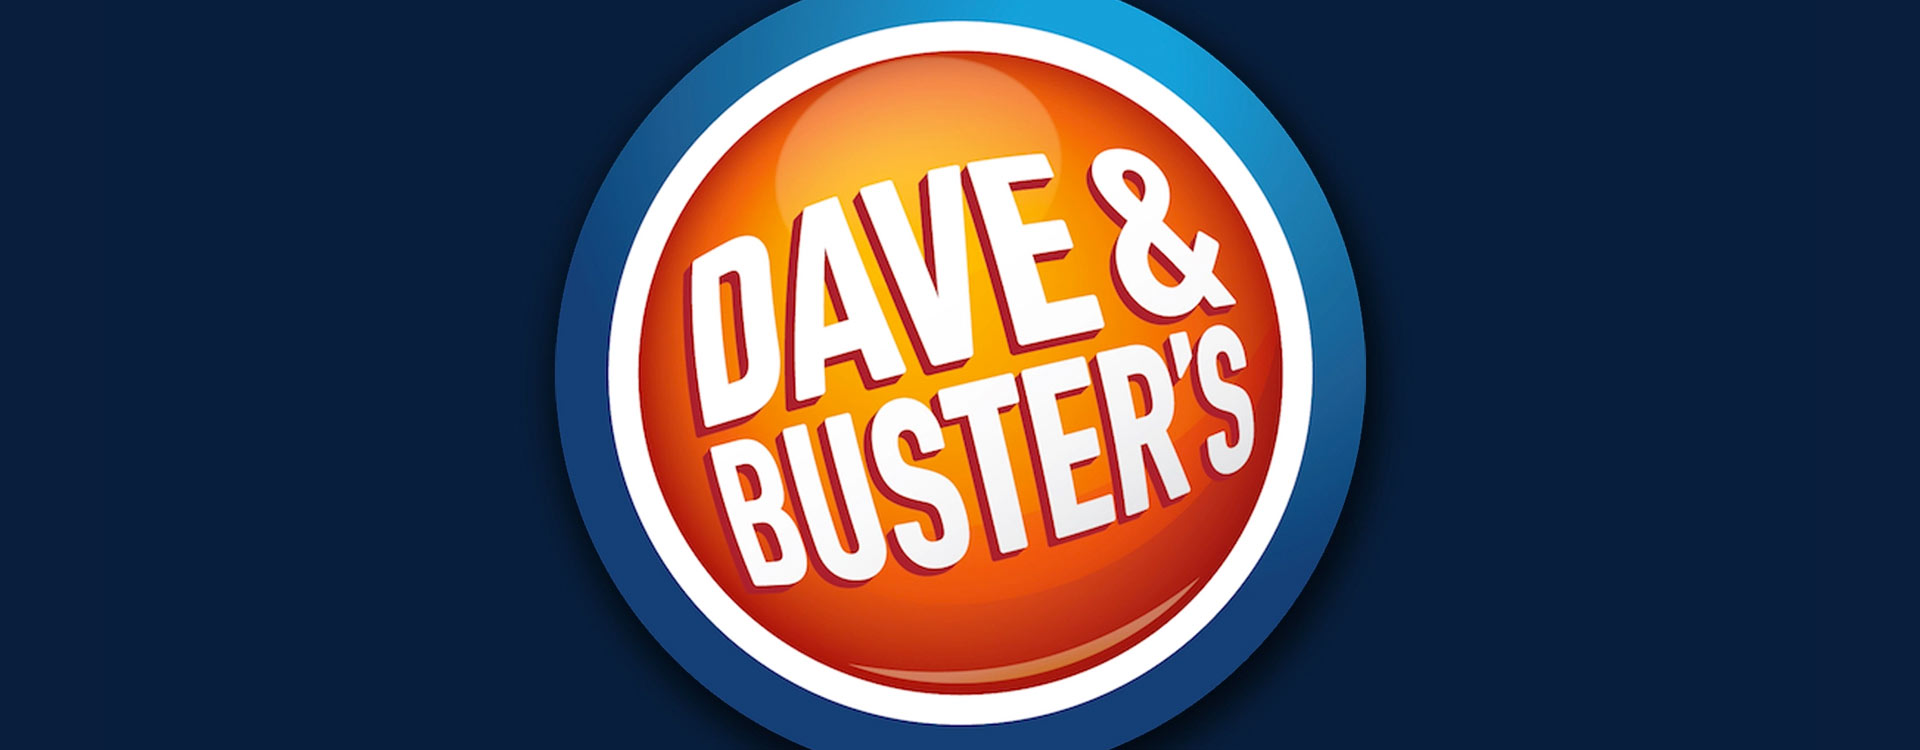 Dave & Busters Taps Mother